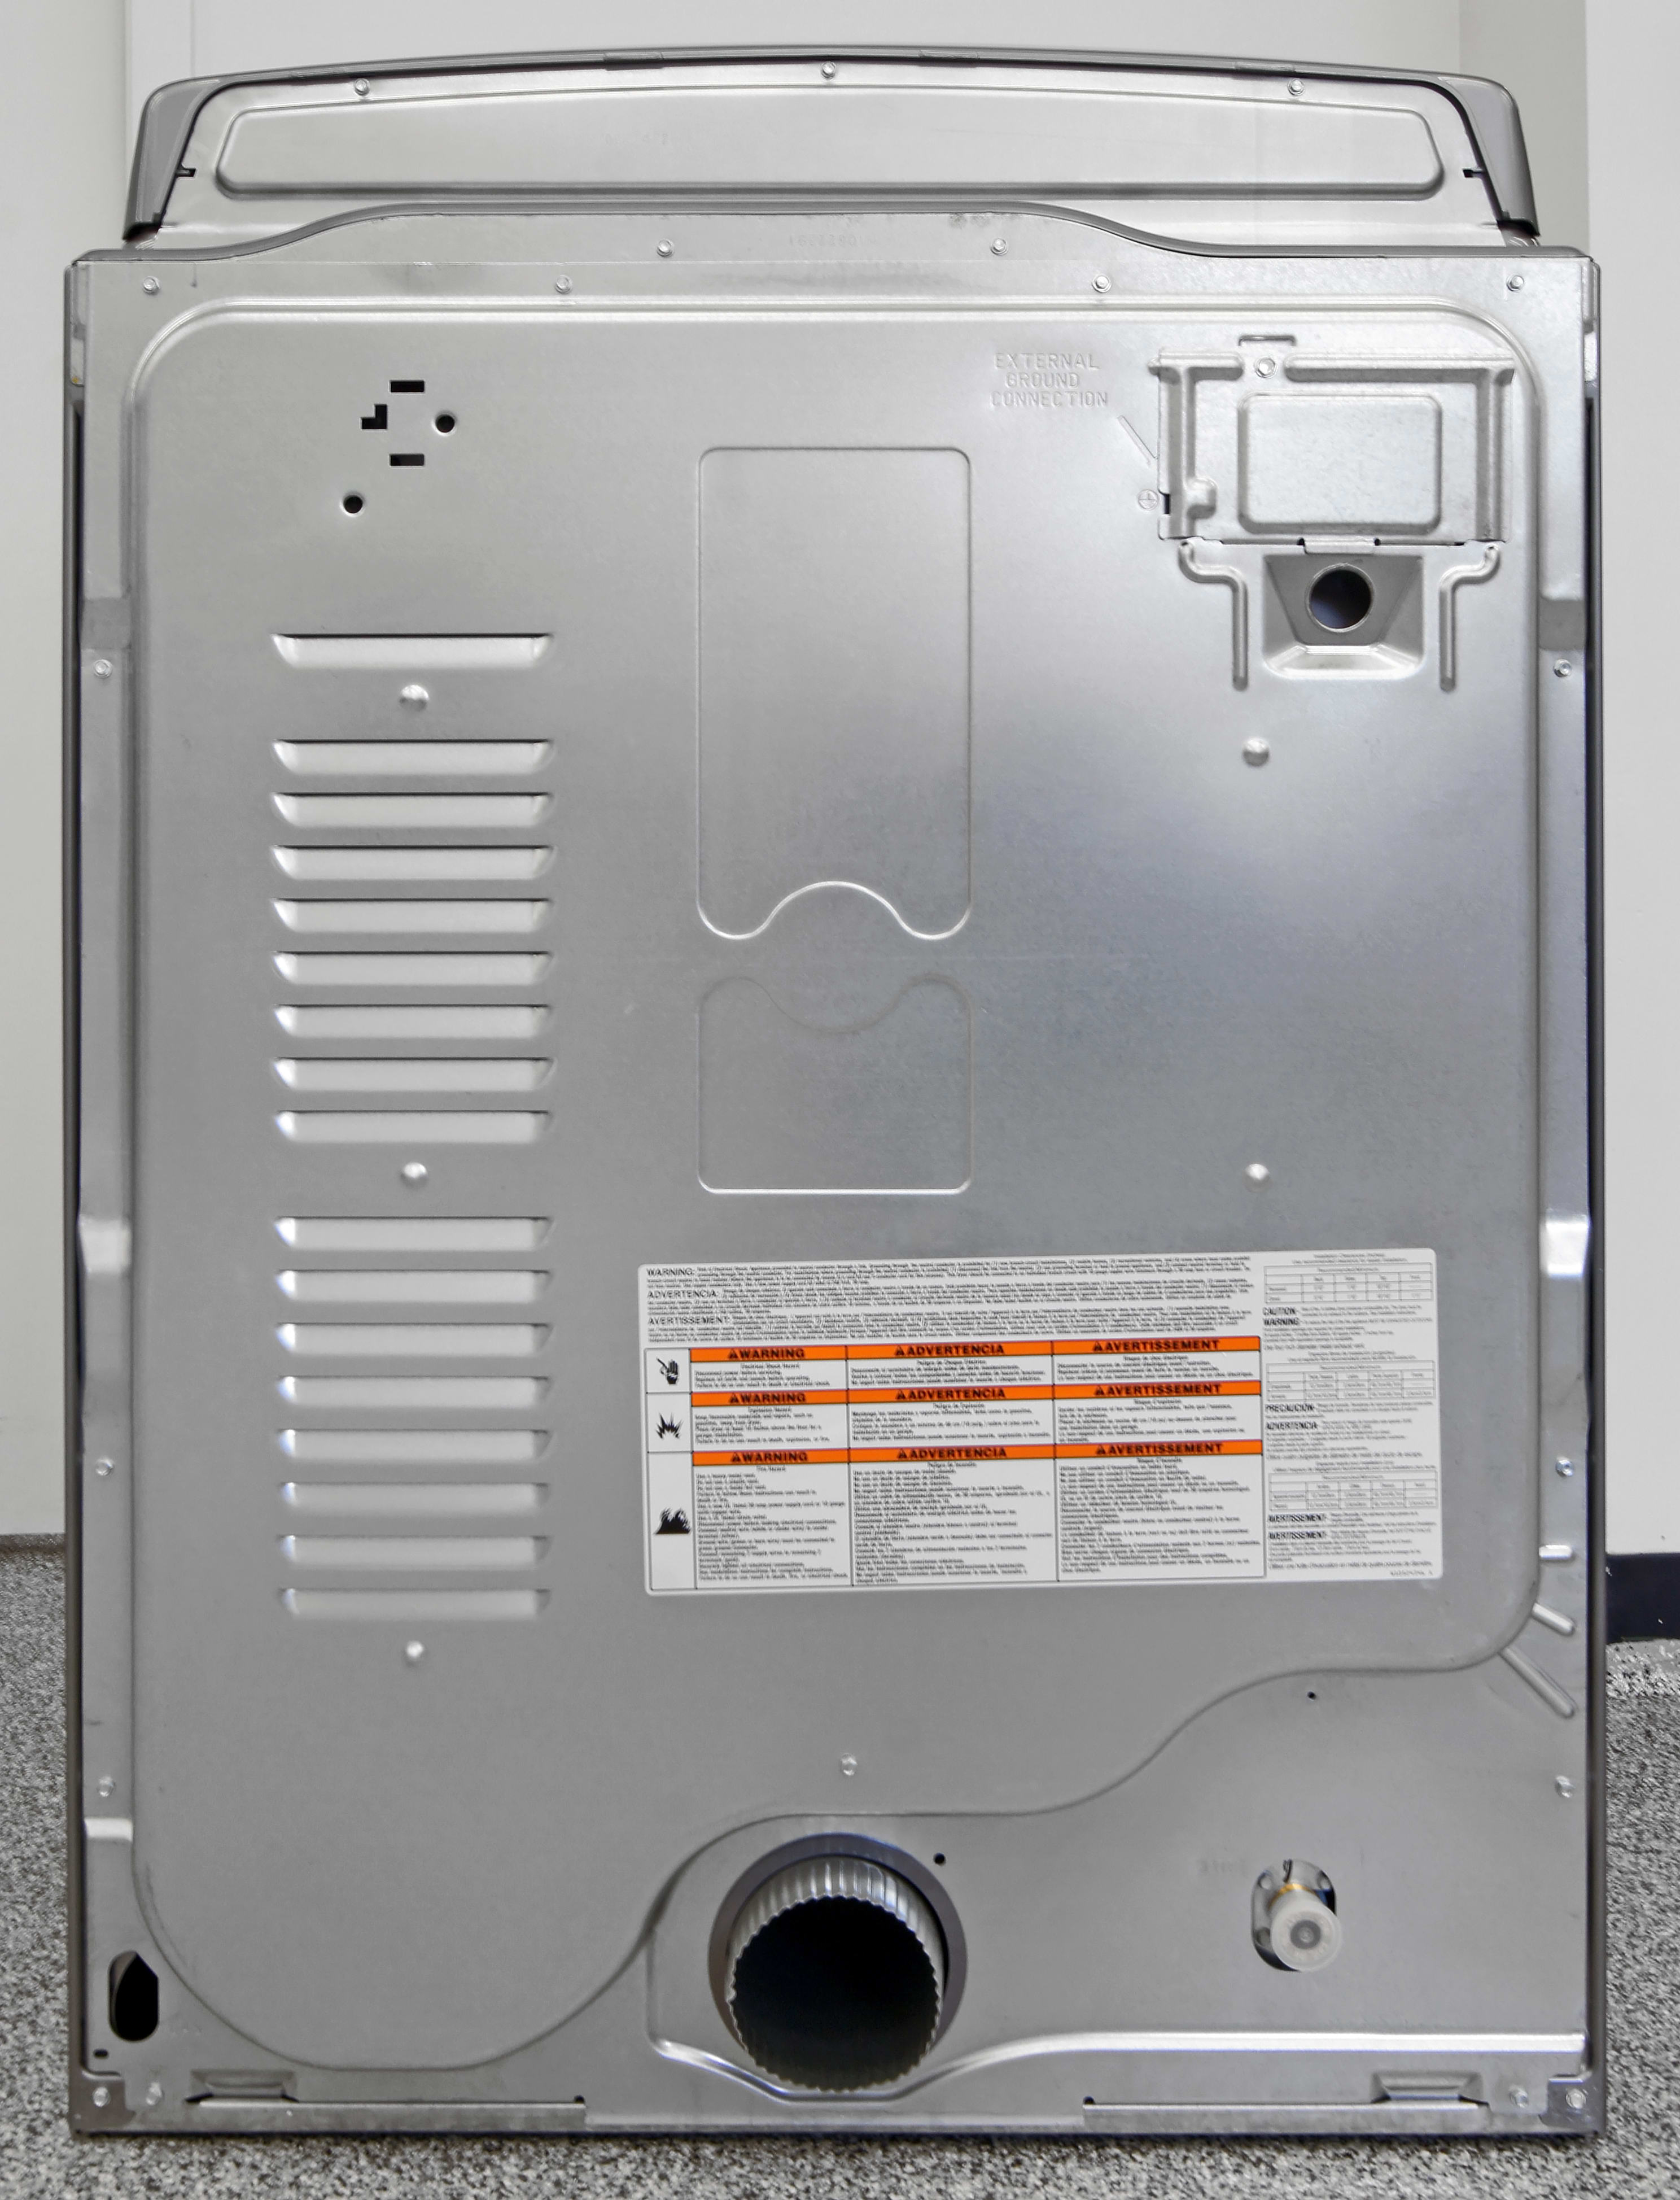 A traditional vented hookup is found in the back of the Whirlpool Cabrio WED8500DC, along with the water input for steam features.